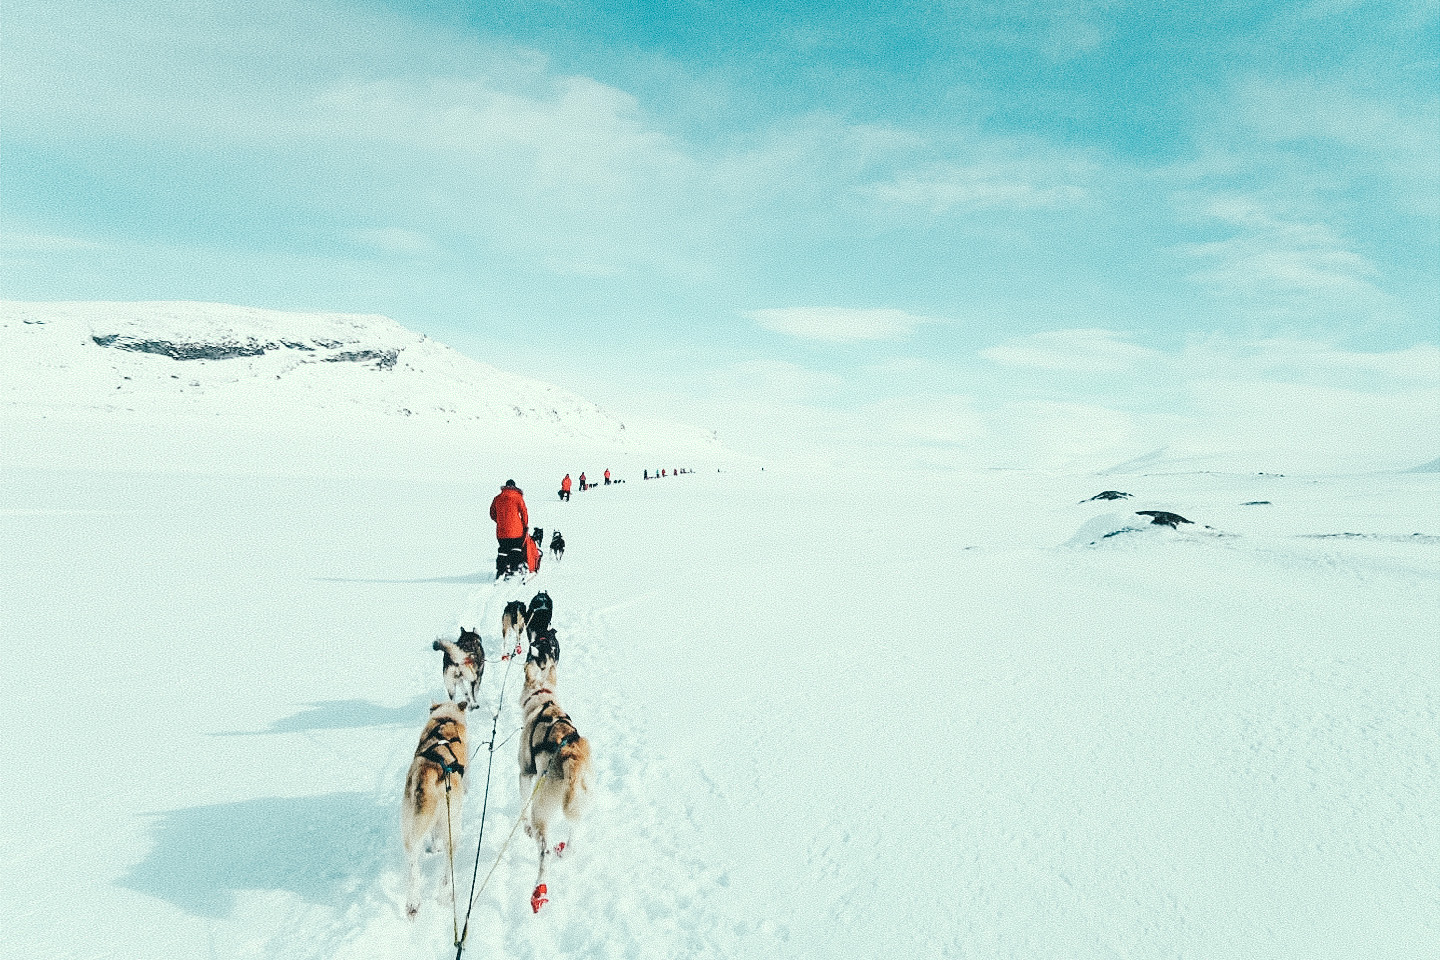 Dog sledding expedition in the Arctic